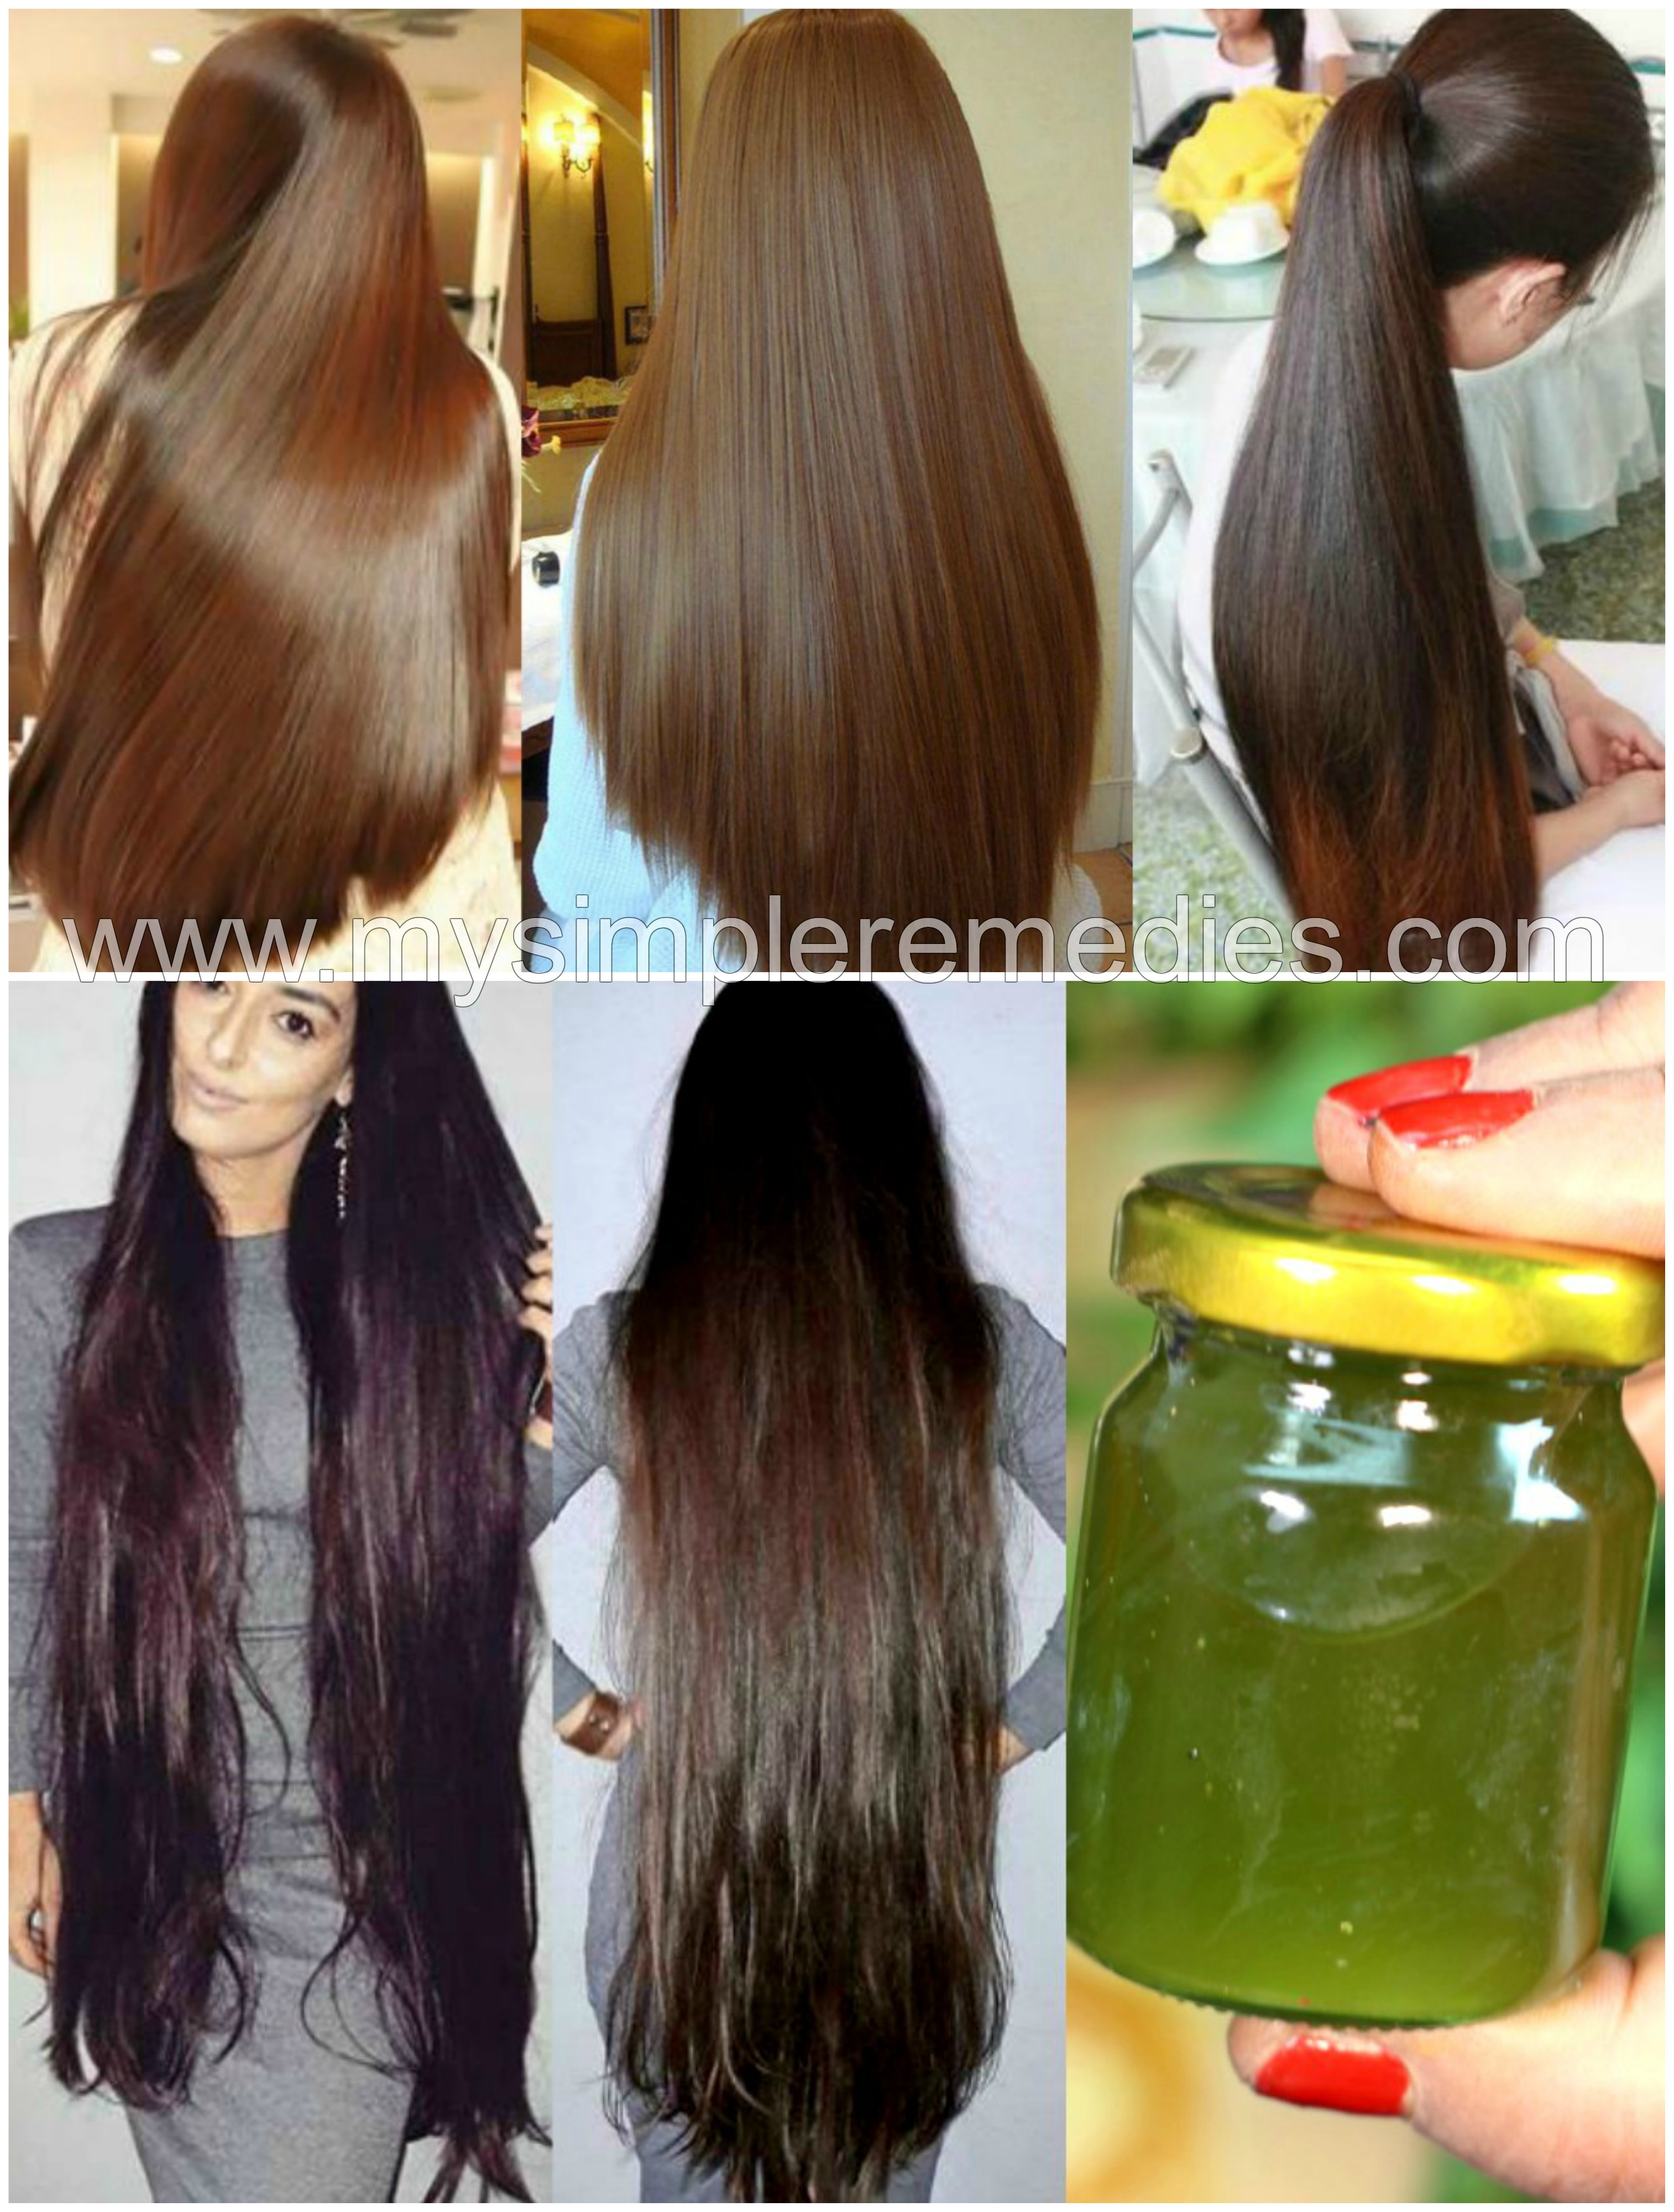 How To Grow Hair Faster - Best Hair Loss Balding Treatment